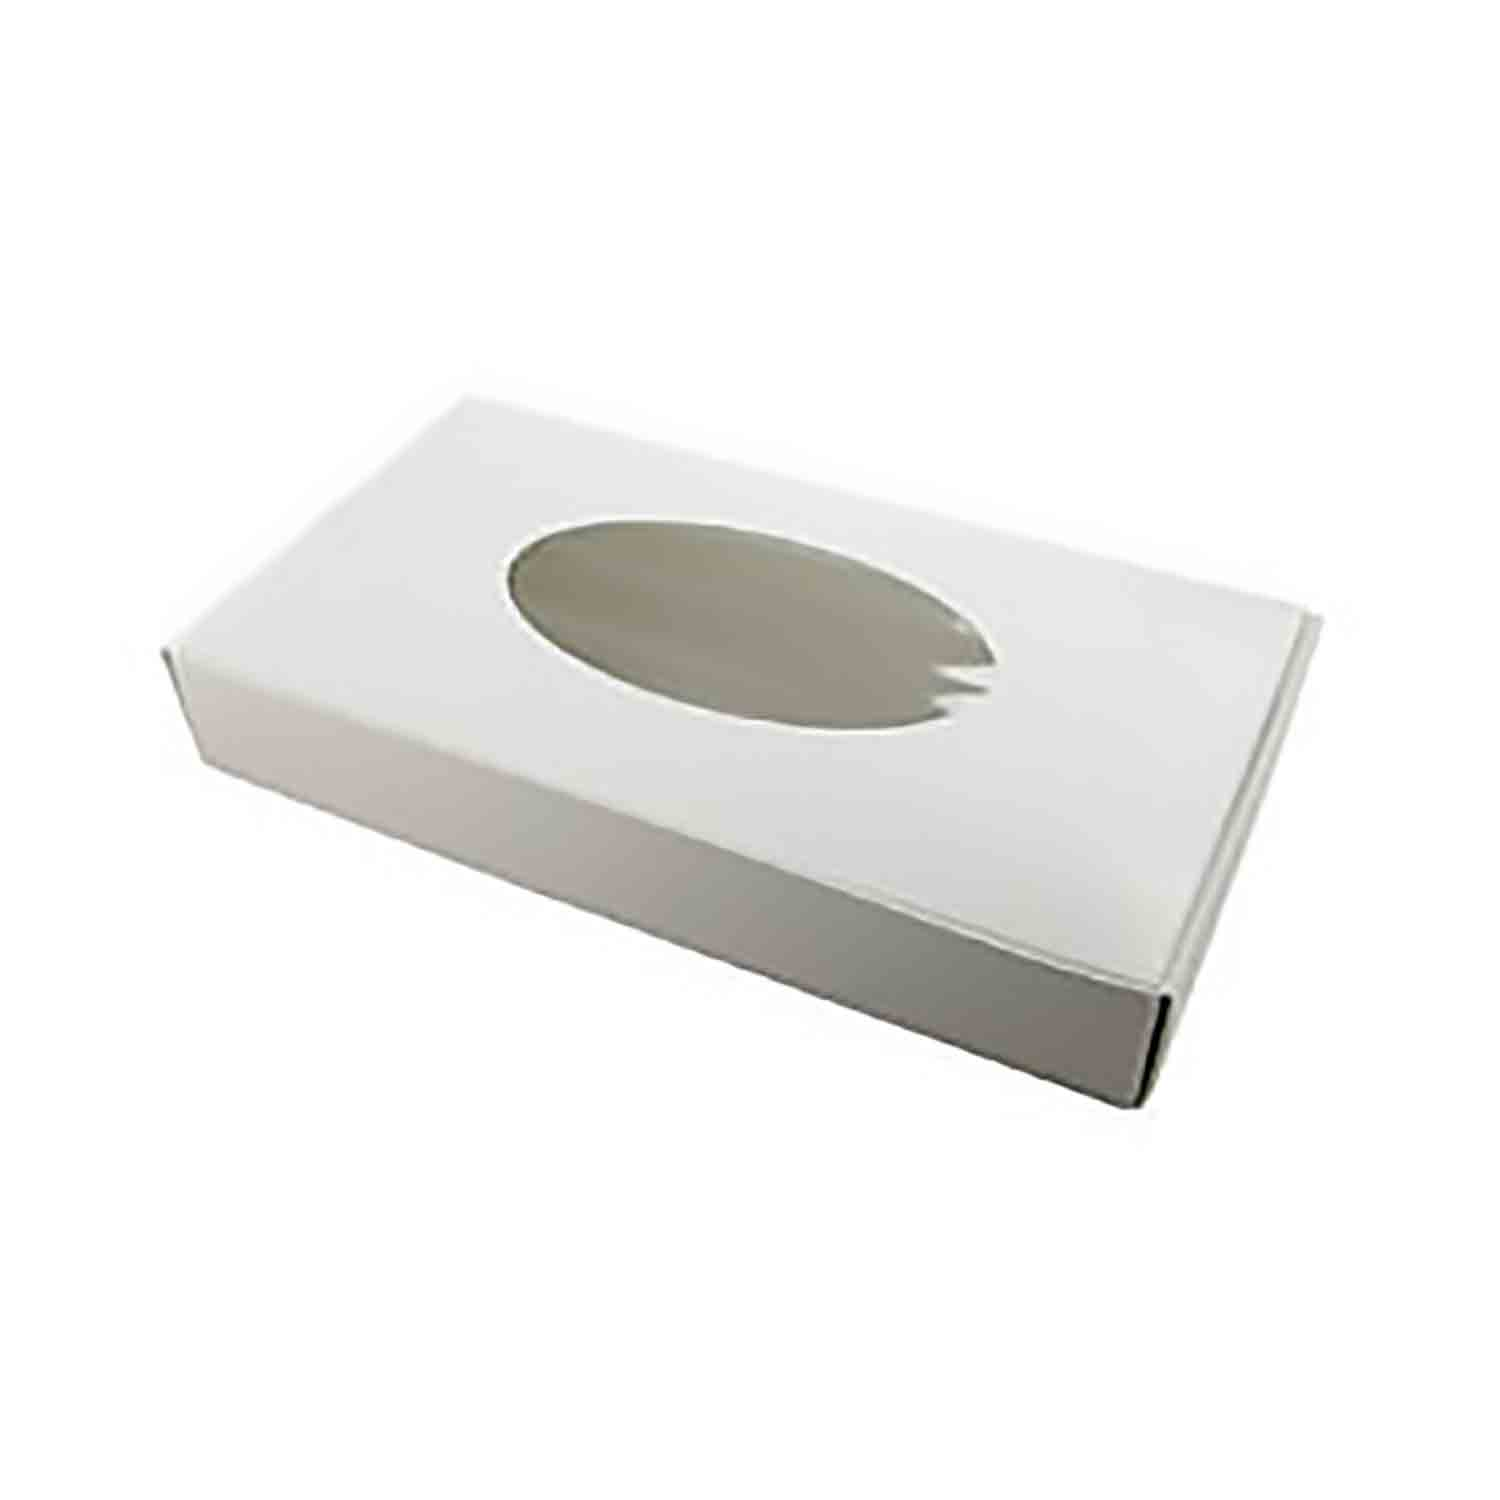 1/2 lb. White Candy Box with Window